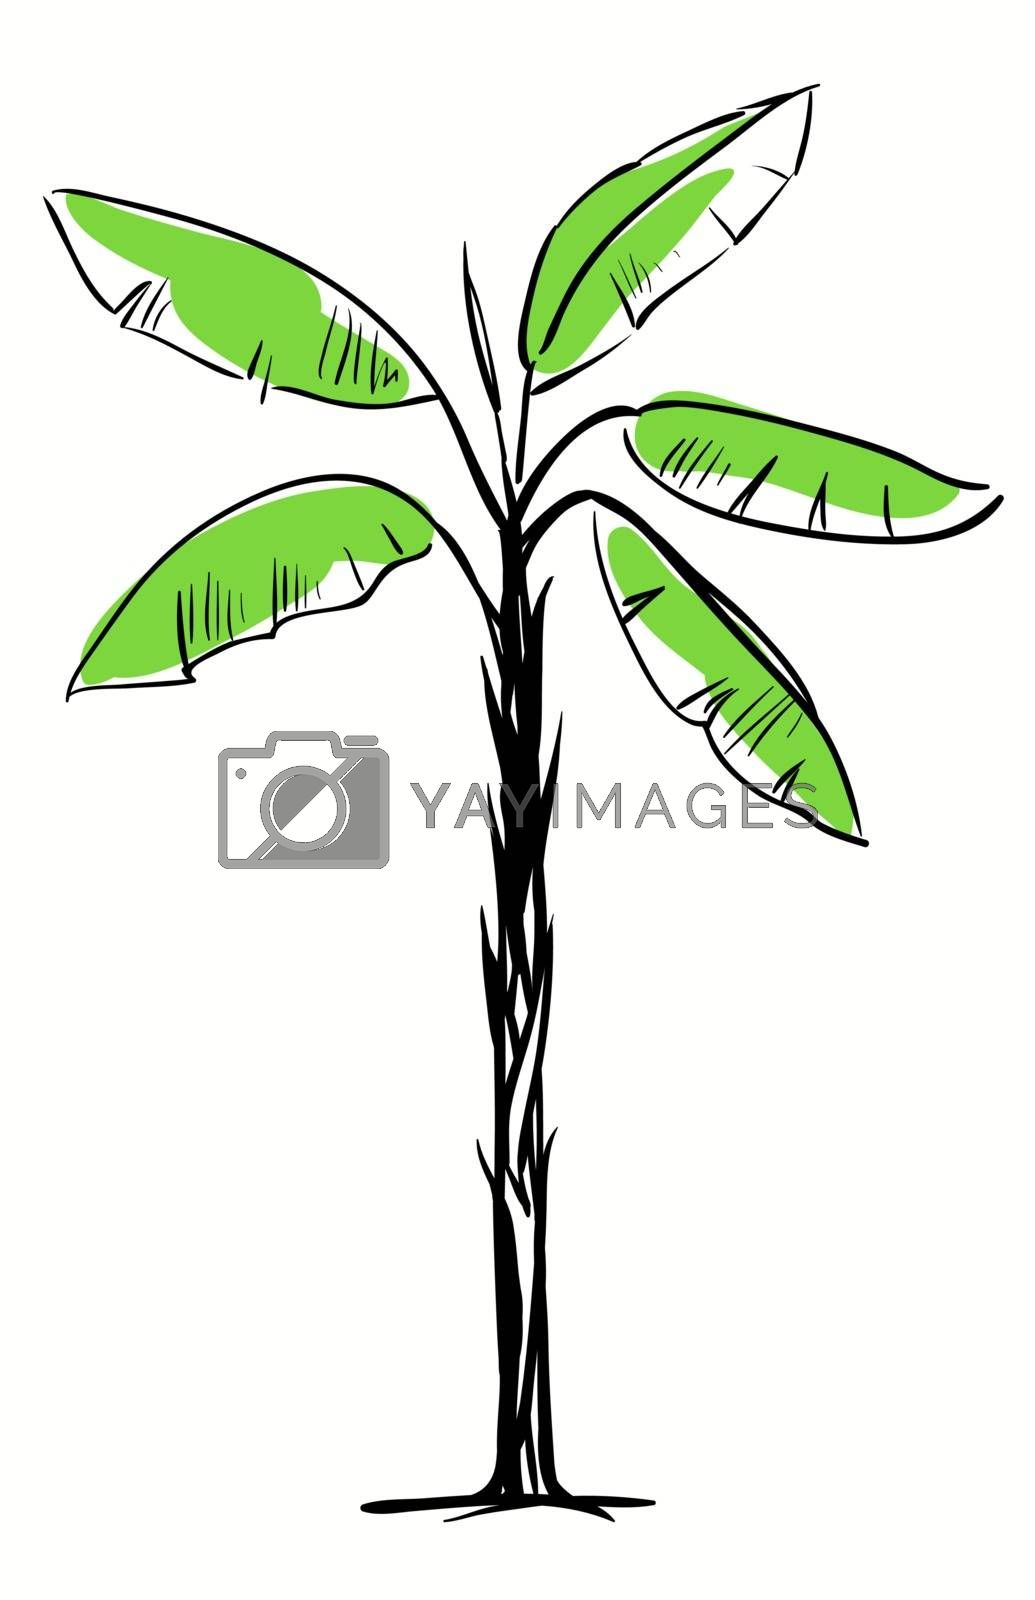 Tropical Palm Tree Isolated on White Background, Vector Illustration